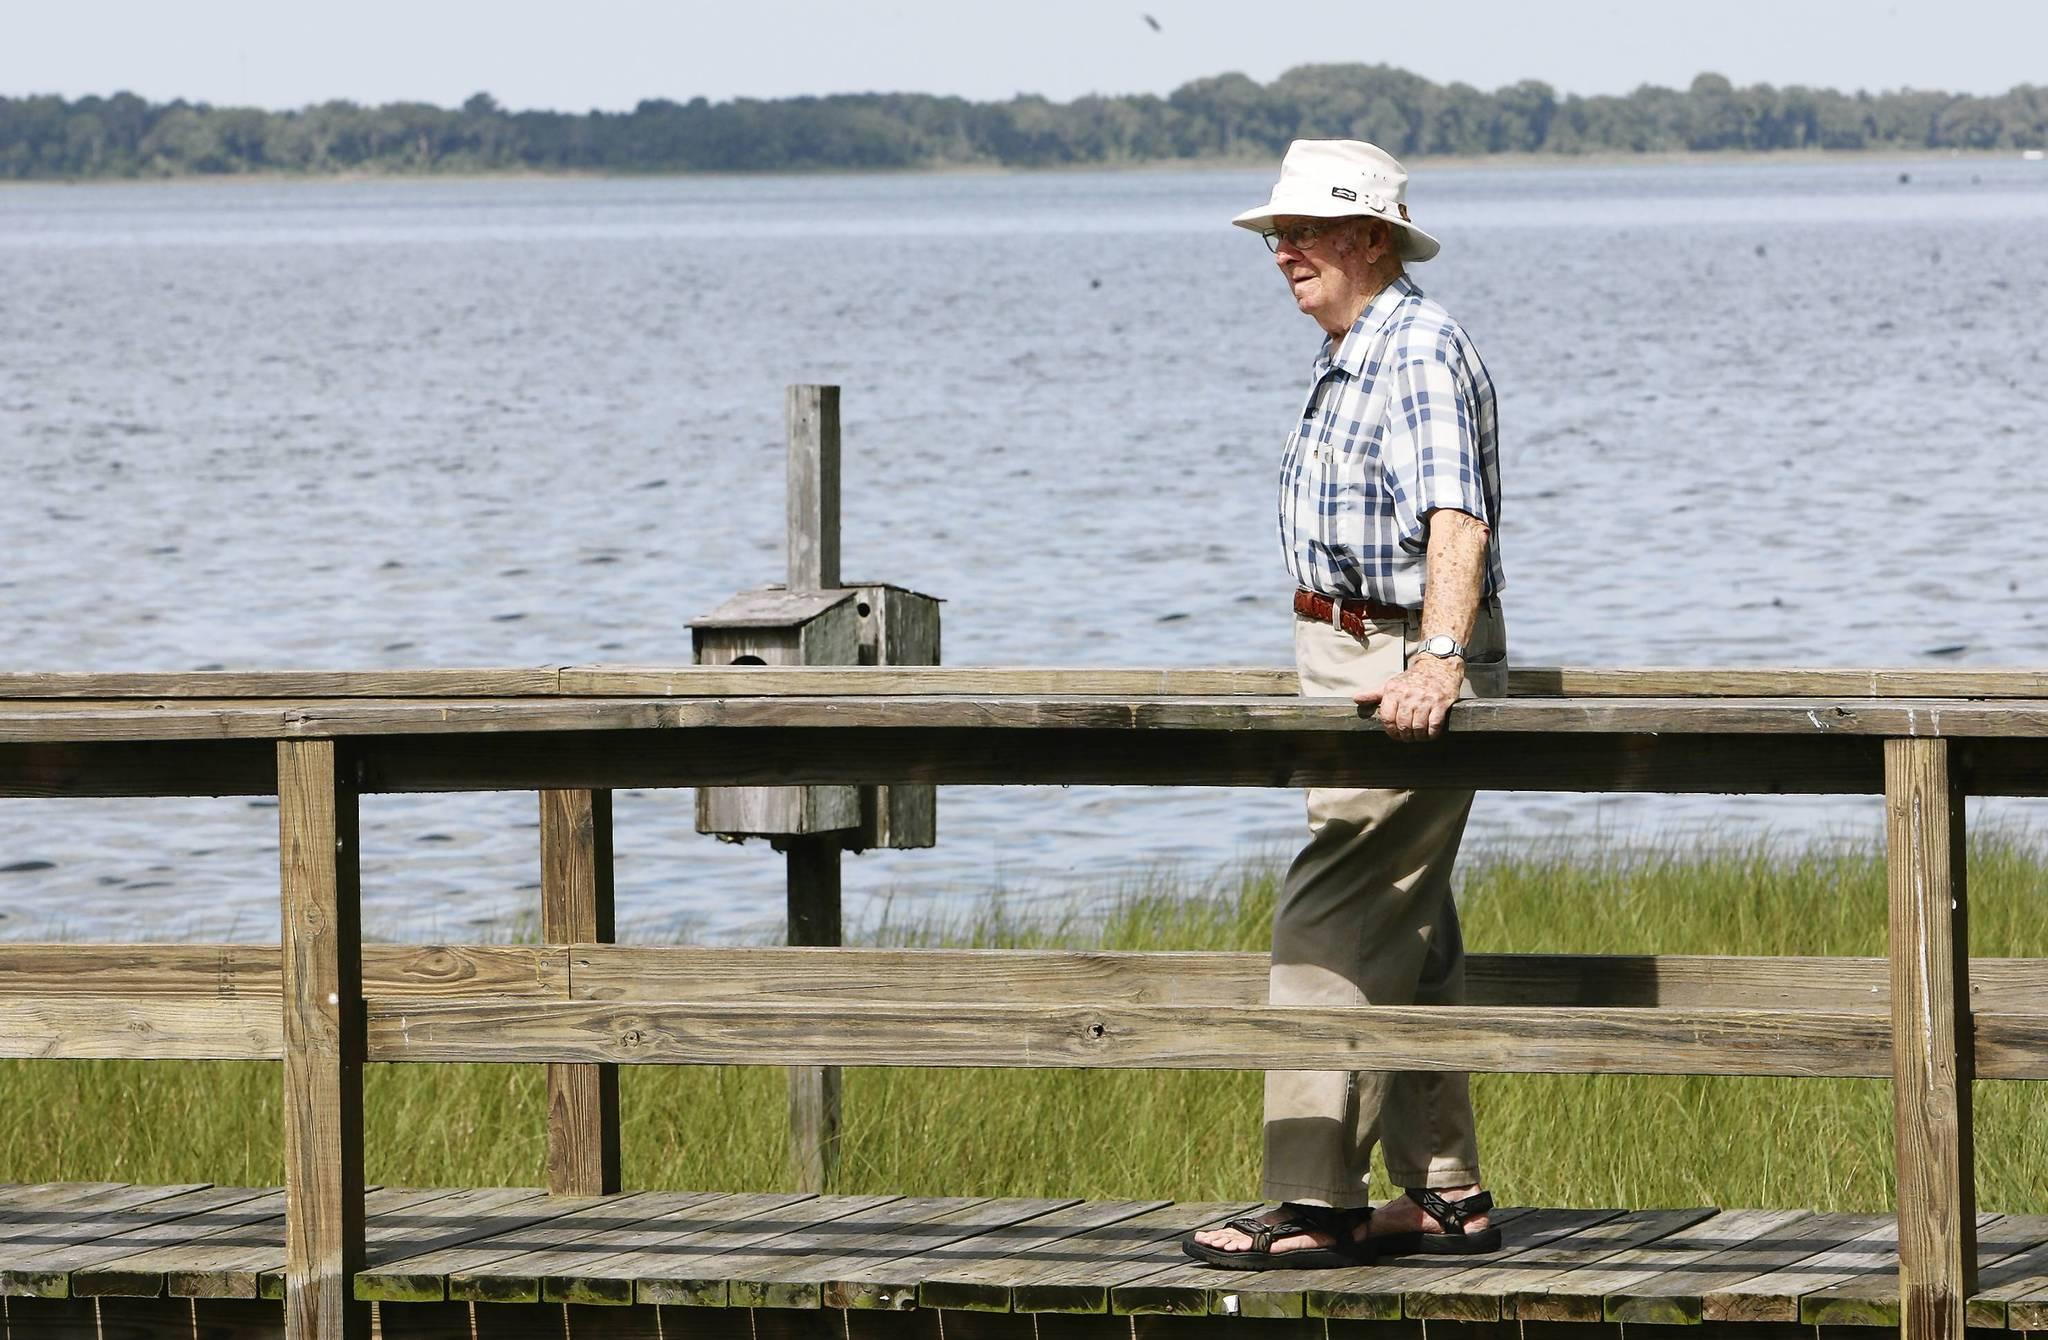 Robert Forbes of Tavares, 94, and a longtime Lakewatch volunteer, checks water levels on Lake Dora   daily.(Tom Benitez/Orlando Sentinel)